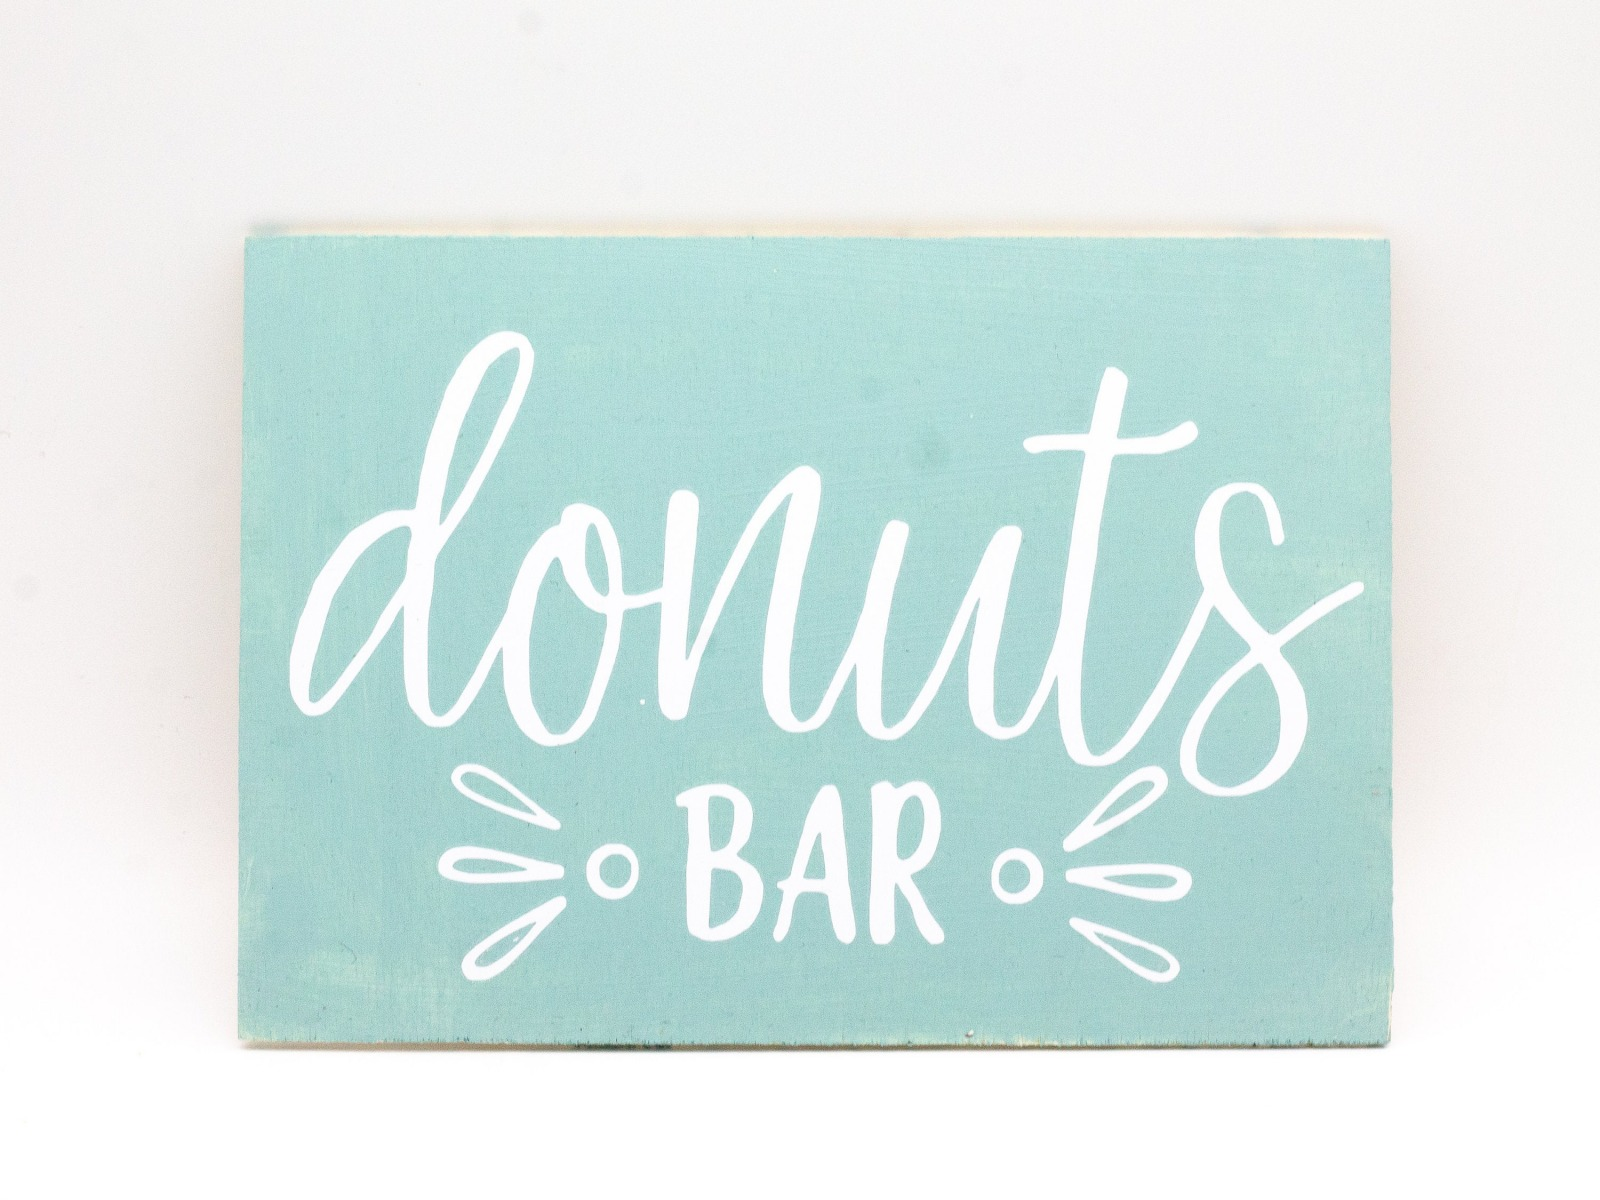 Donut Bar - Holzschild